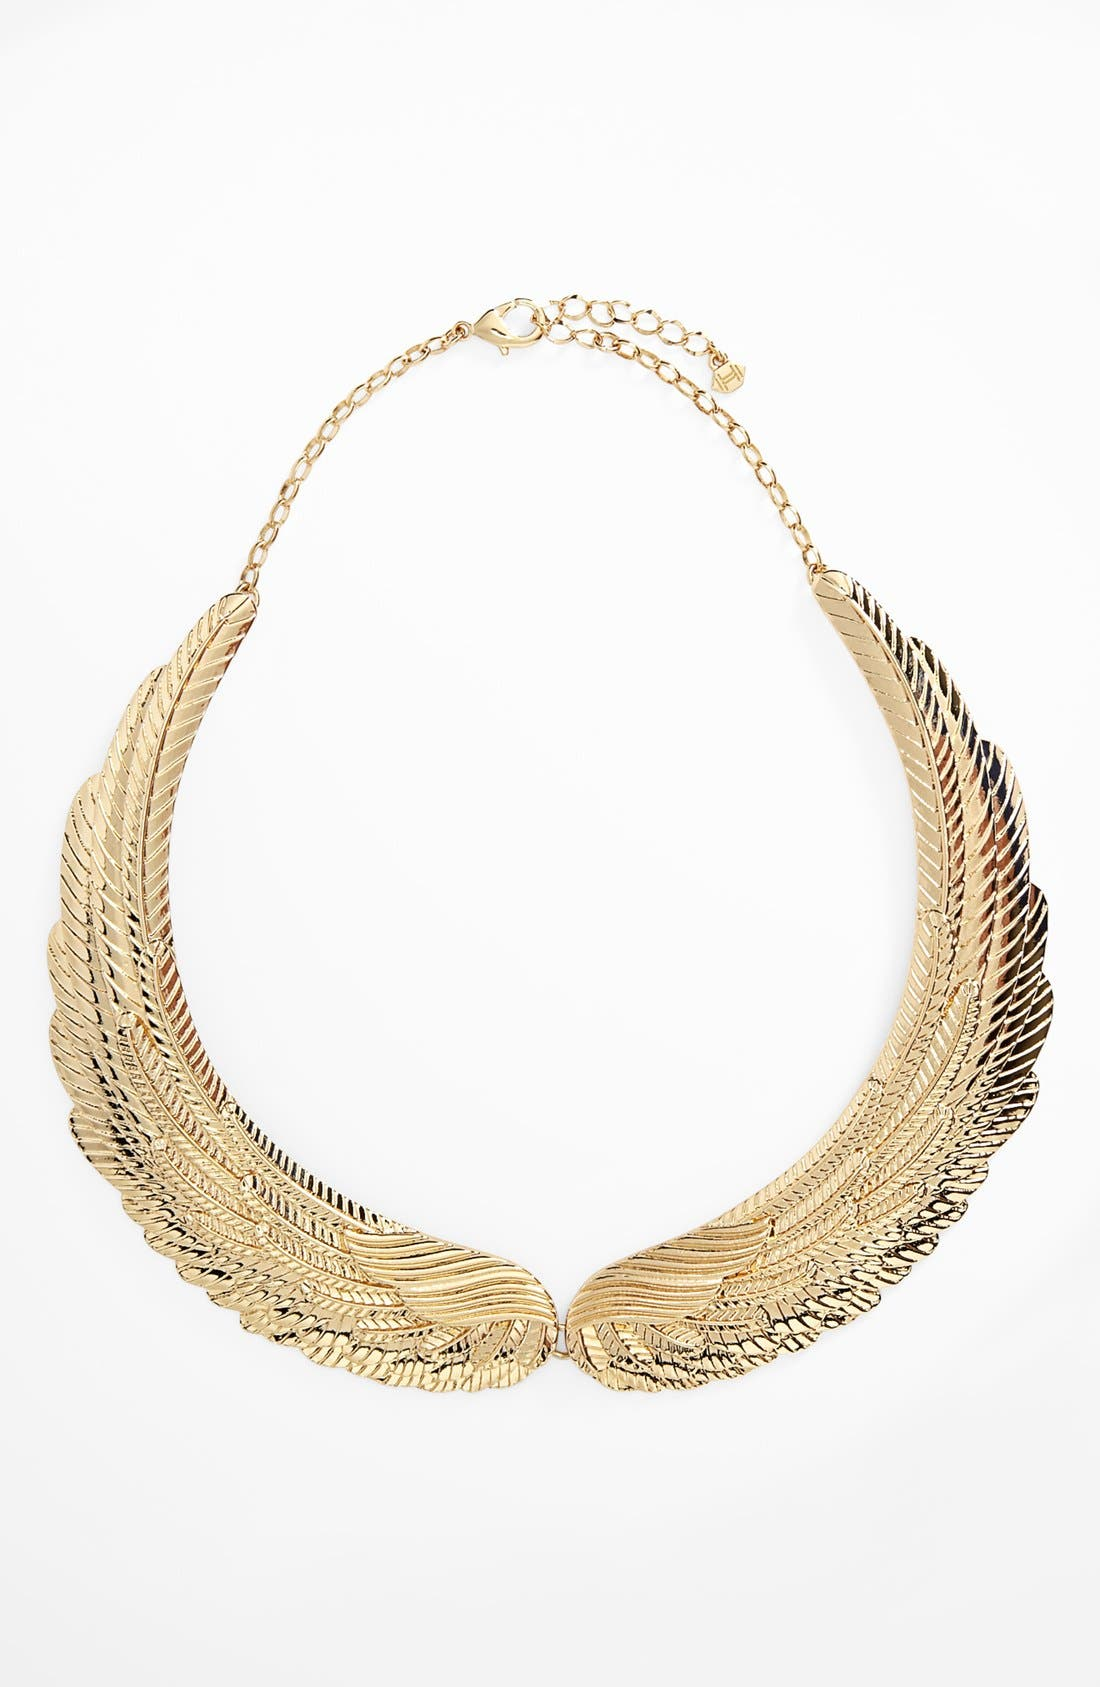 Alternate Image 1 Selected - Metal Haven by KENDALL + KYLIE Wing Necklace (Juniors) (Nordstrom Exclusive)